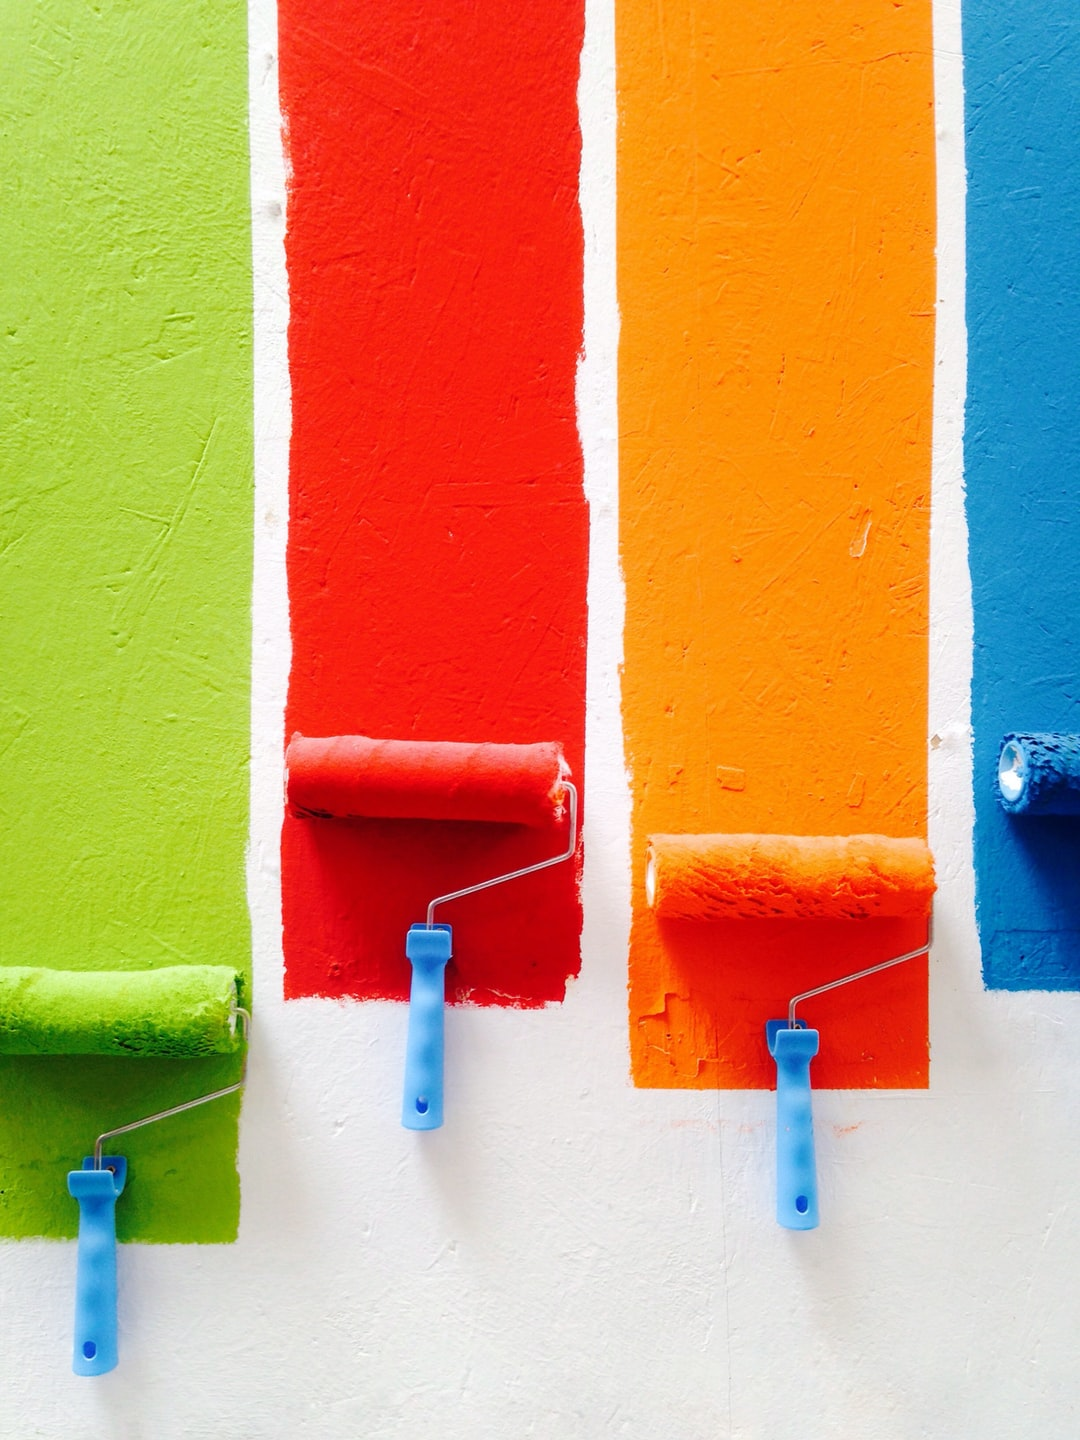 7 Reasons You Should Hire a Commercial Painter in Chelmsford, MA